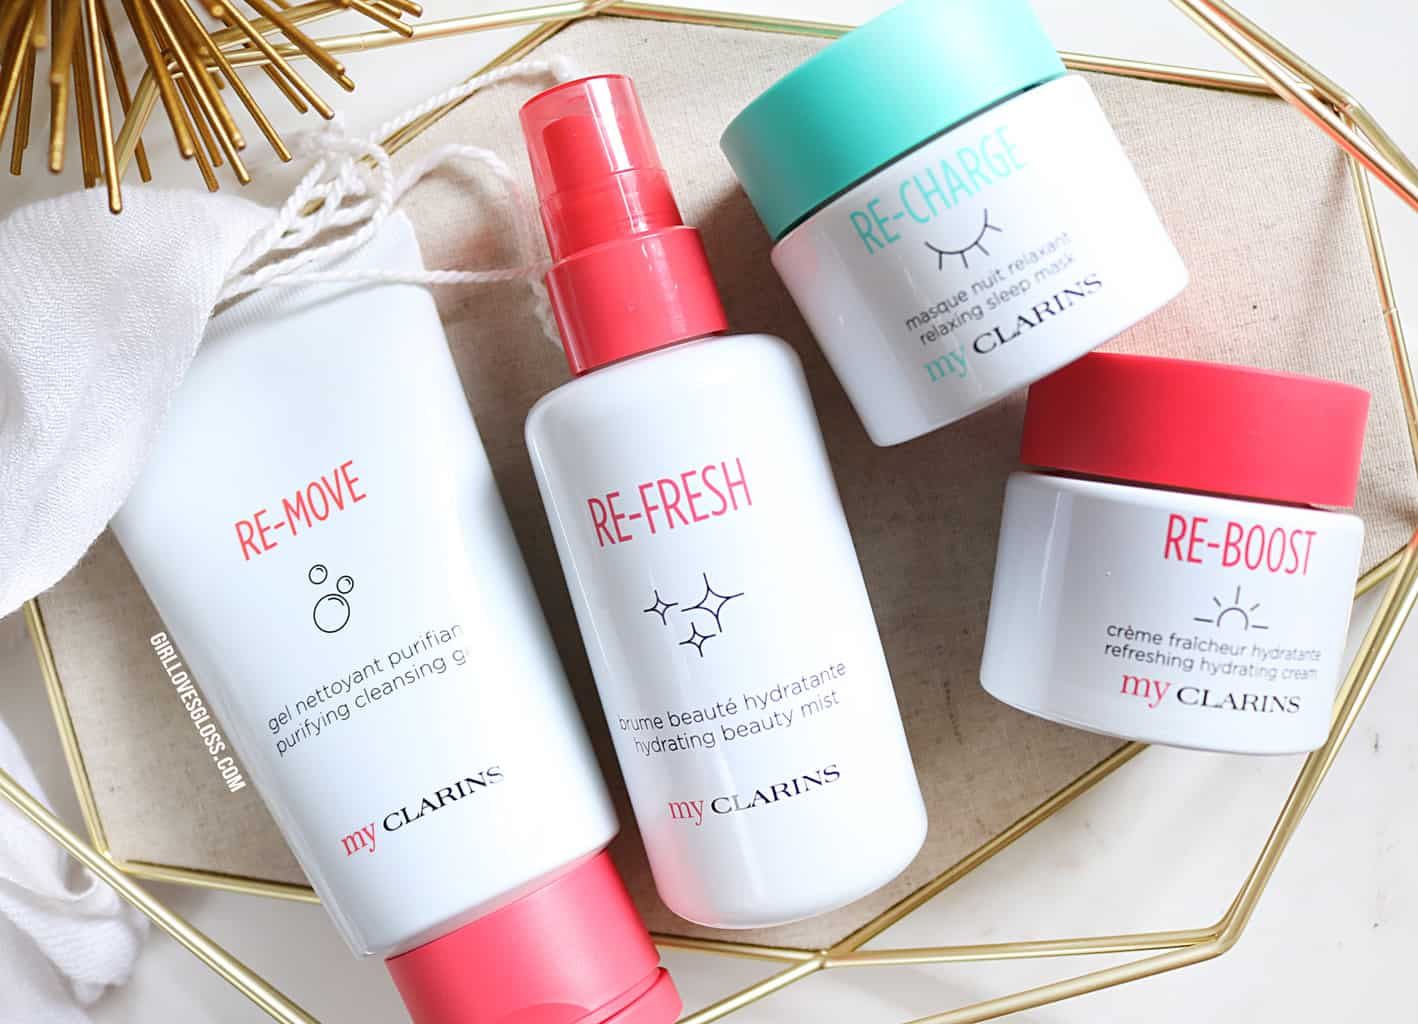 My Clarins Skincare for Millenials Review